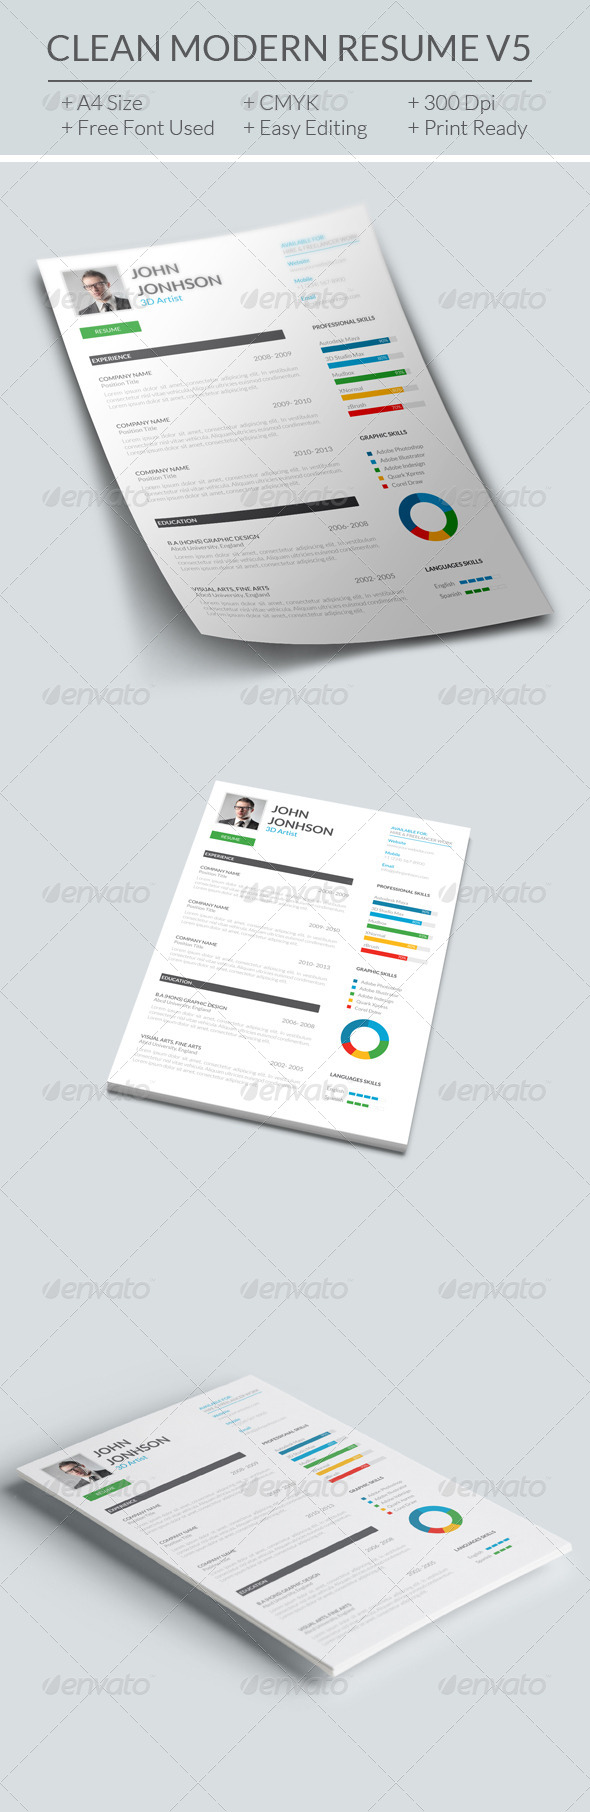 GraphicRiver Clean Modern Resume V5 7883504